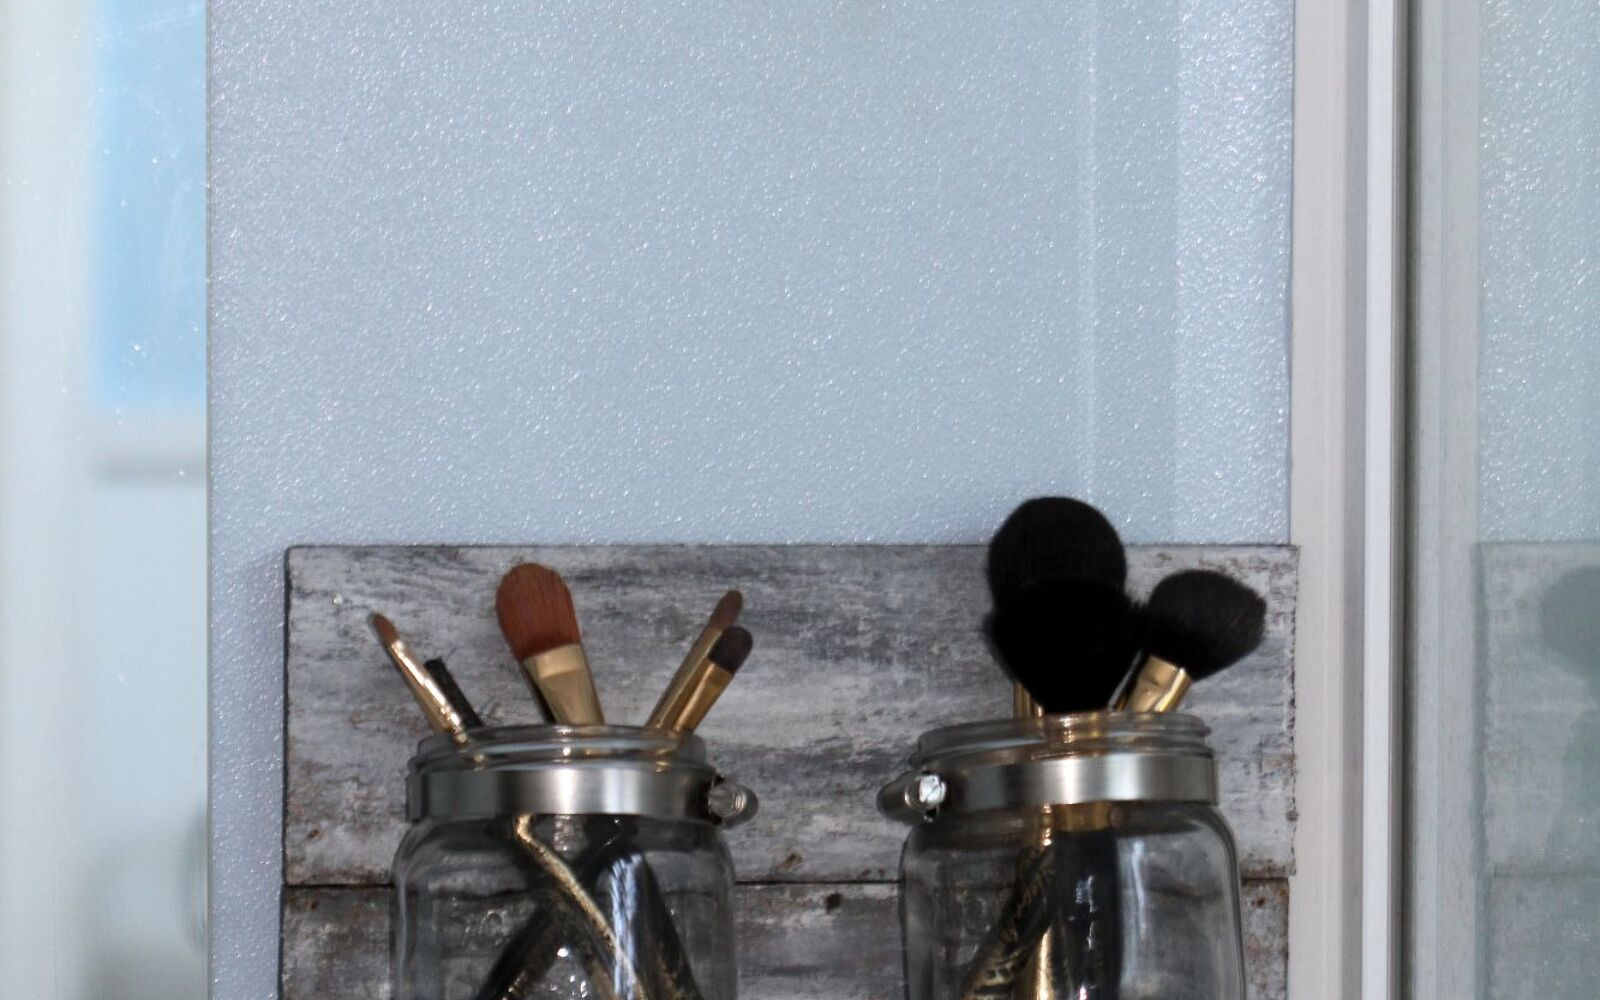 s 30 great mason jar ideas you have to try, Cool Clear Makeup Brush Organizer